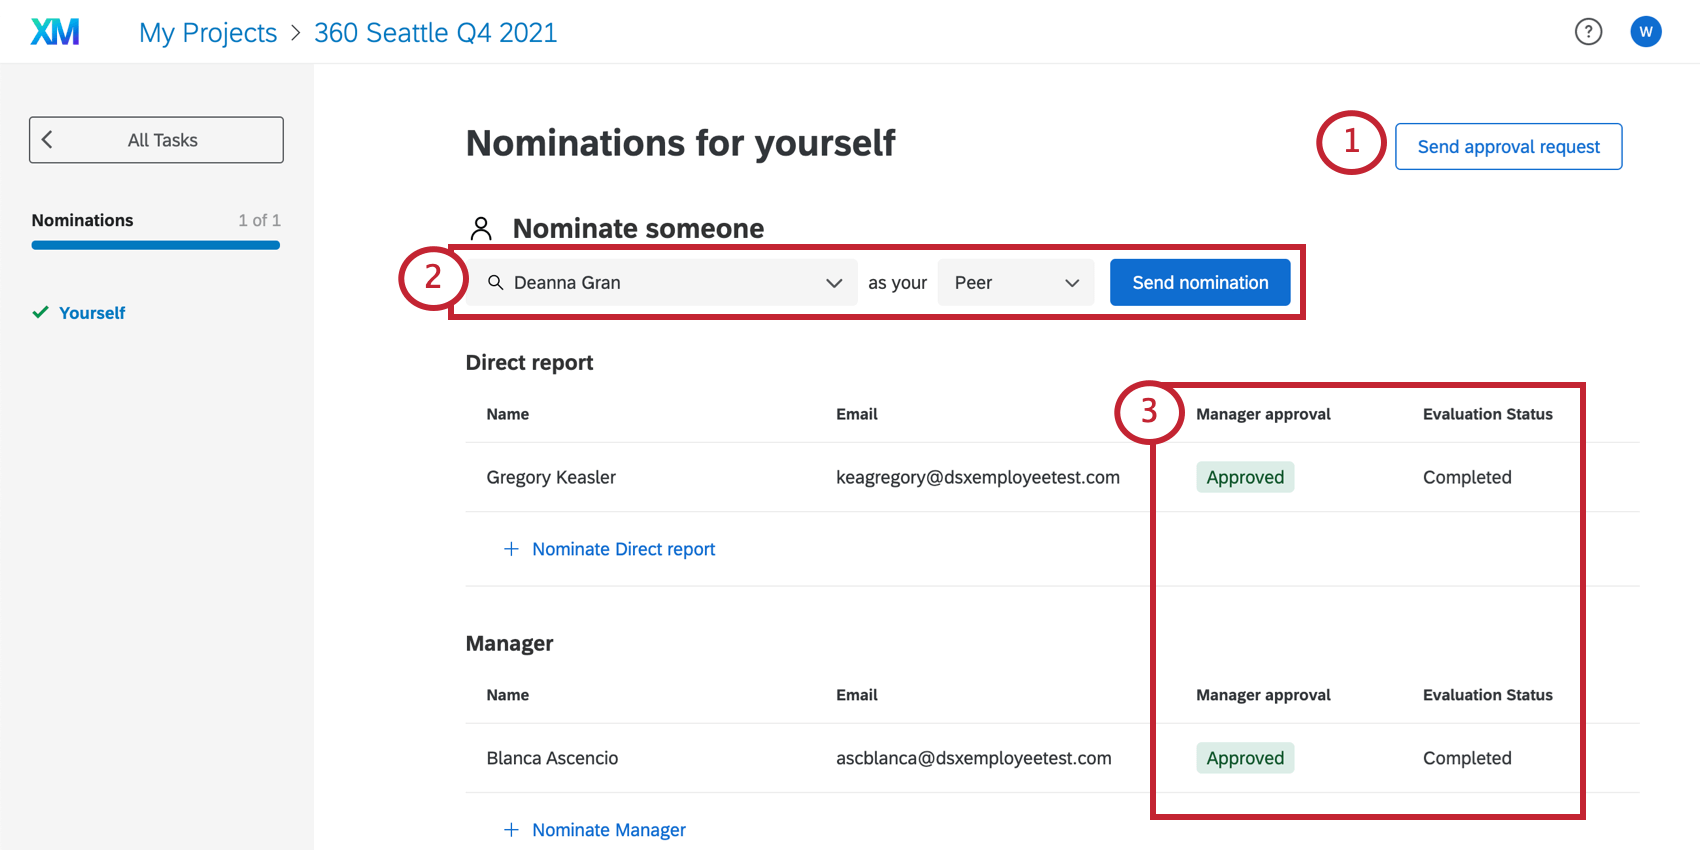 Image f the nomination page. In the upper-right is a button for sending approvals, below that is a menu where you can select a nomination and their relationship for you, and below that is a table of existing nominations, where there are columns for evaluation status and approval status